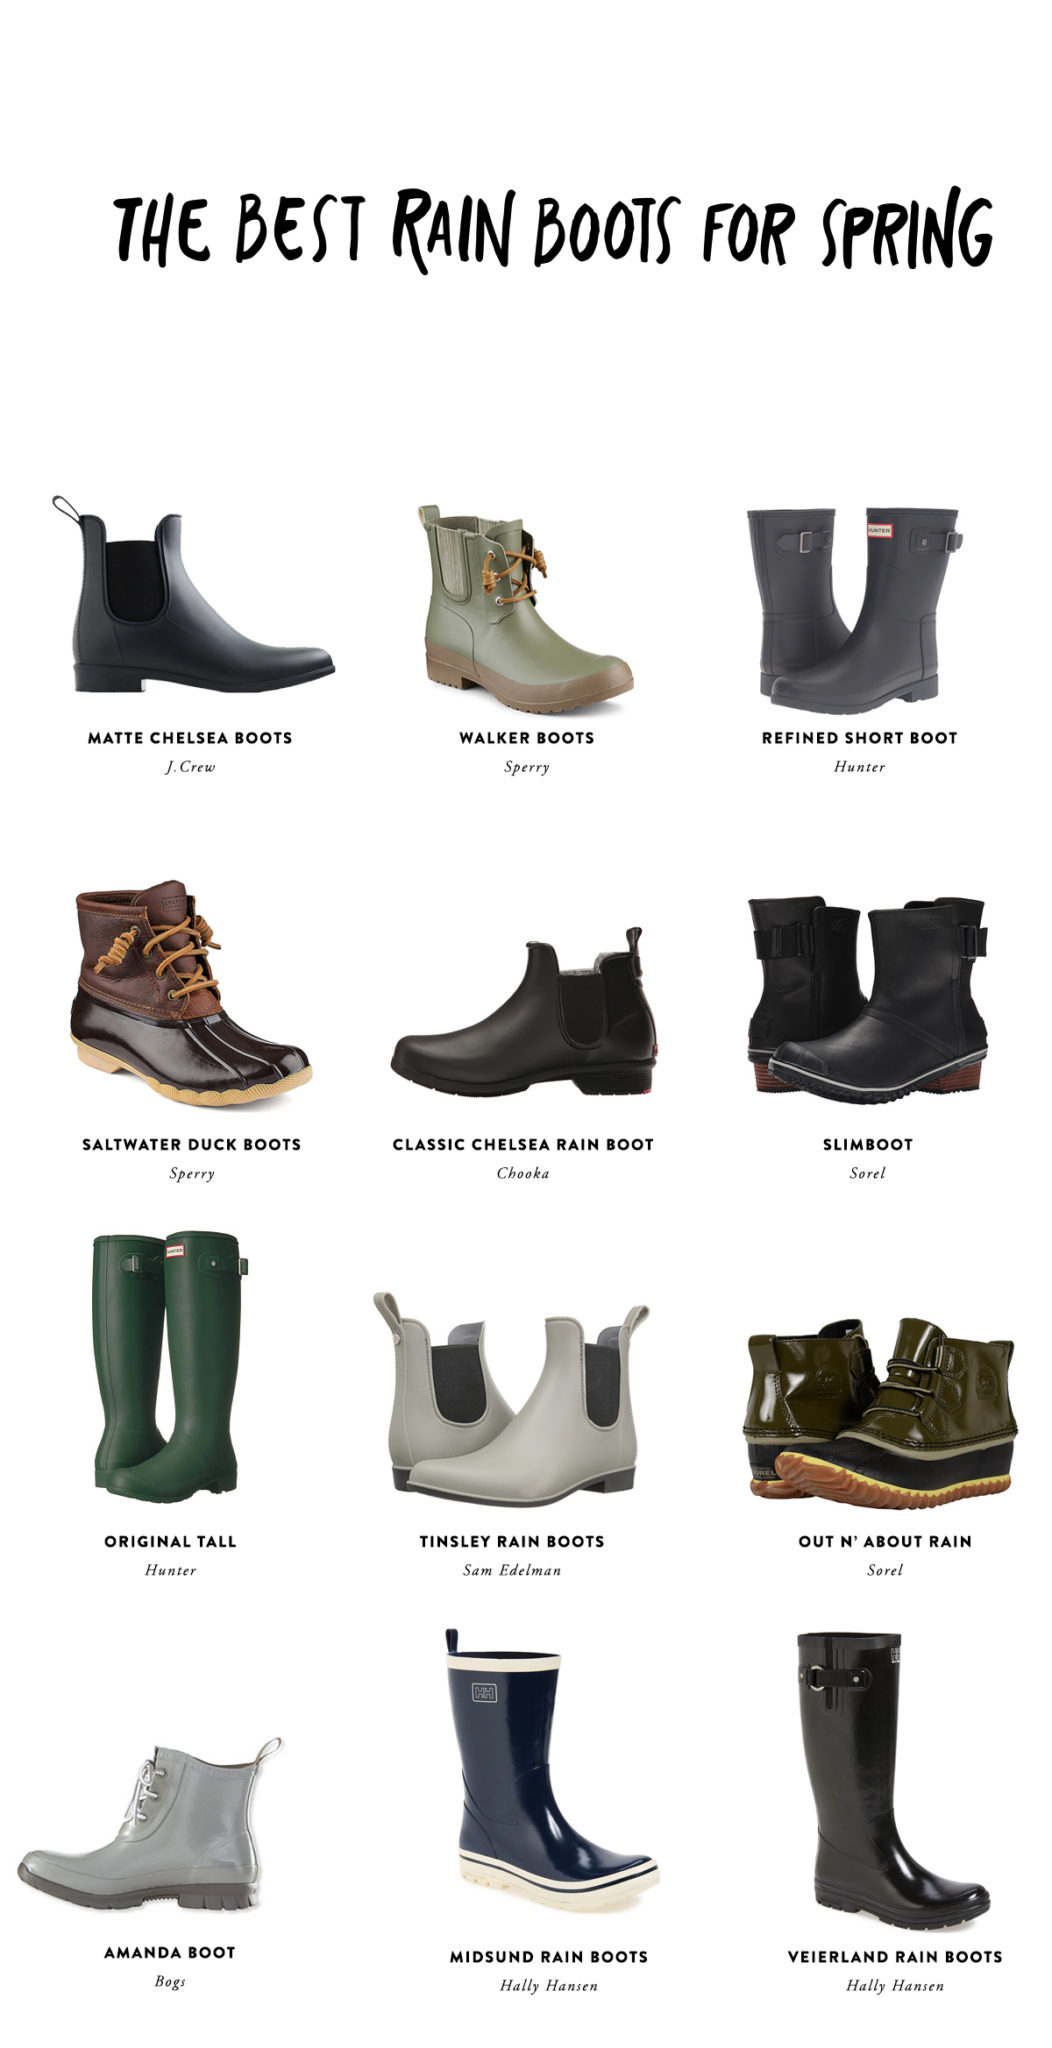 8d1d5155f08 The Best Rain Boots for Spring | Fresh Exchange